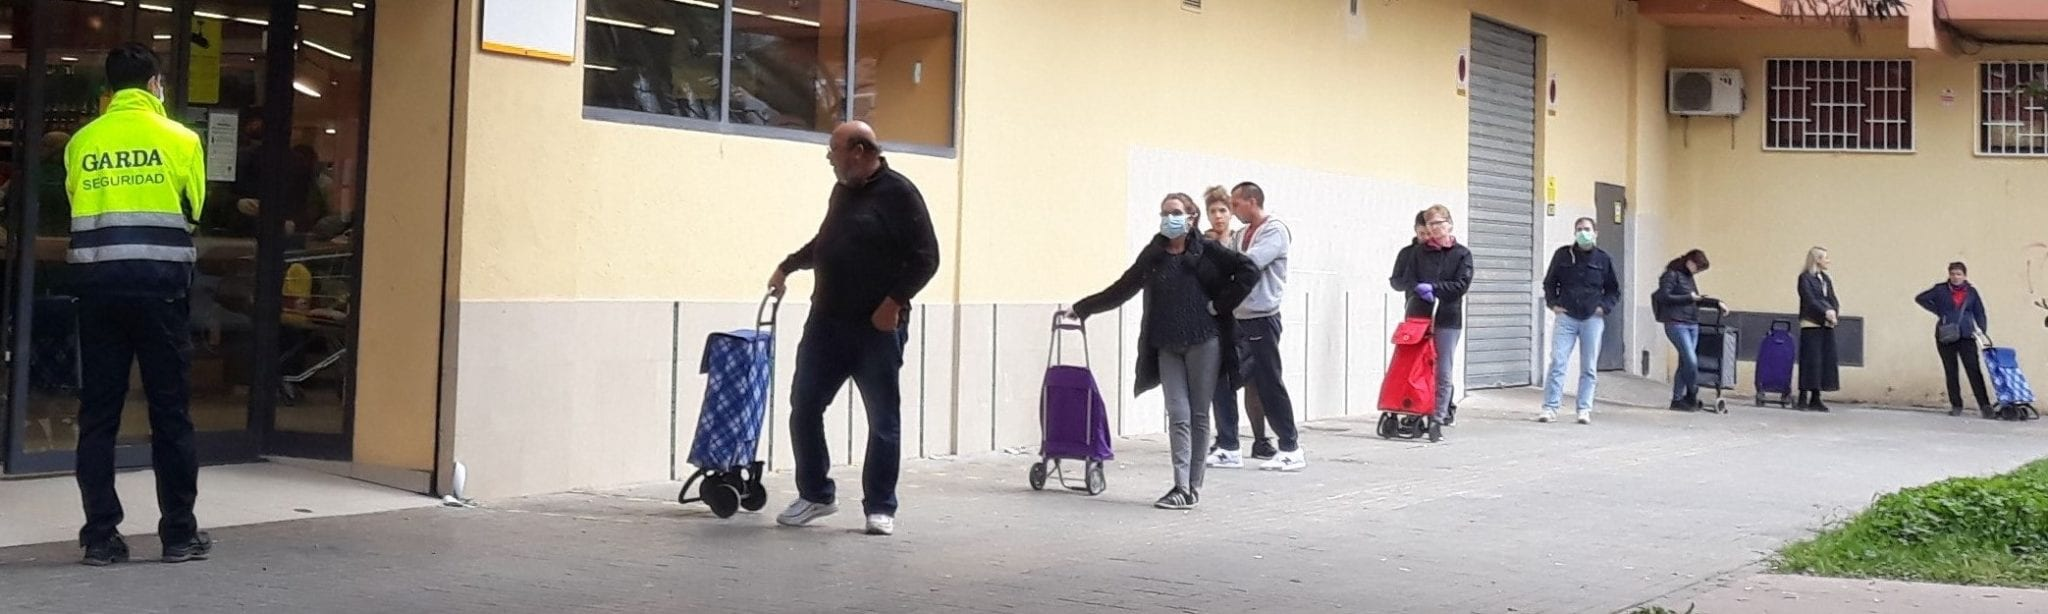 people practicing social distancing outside a clinic in Spain